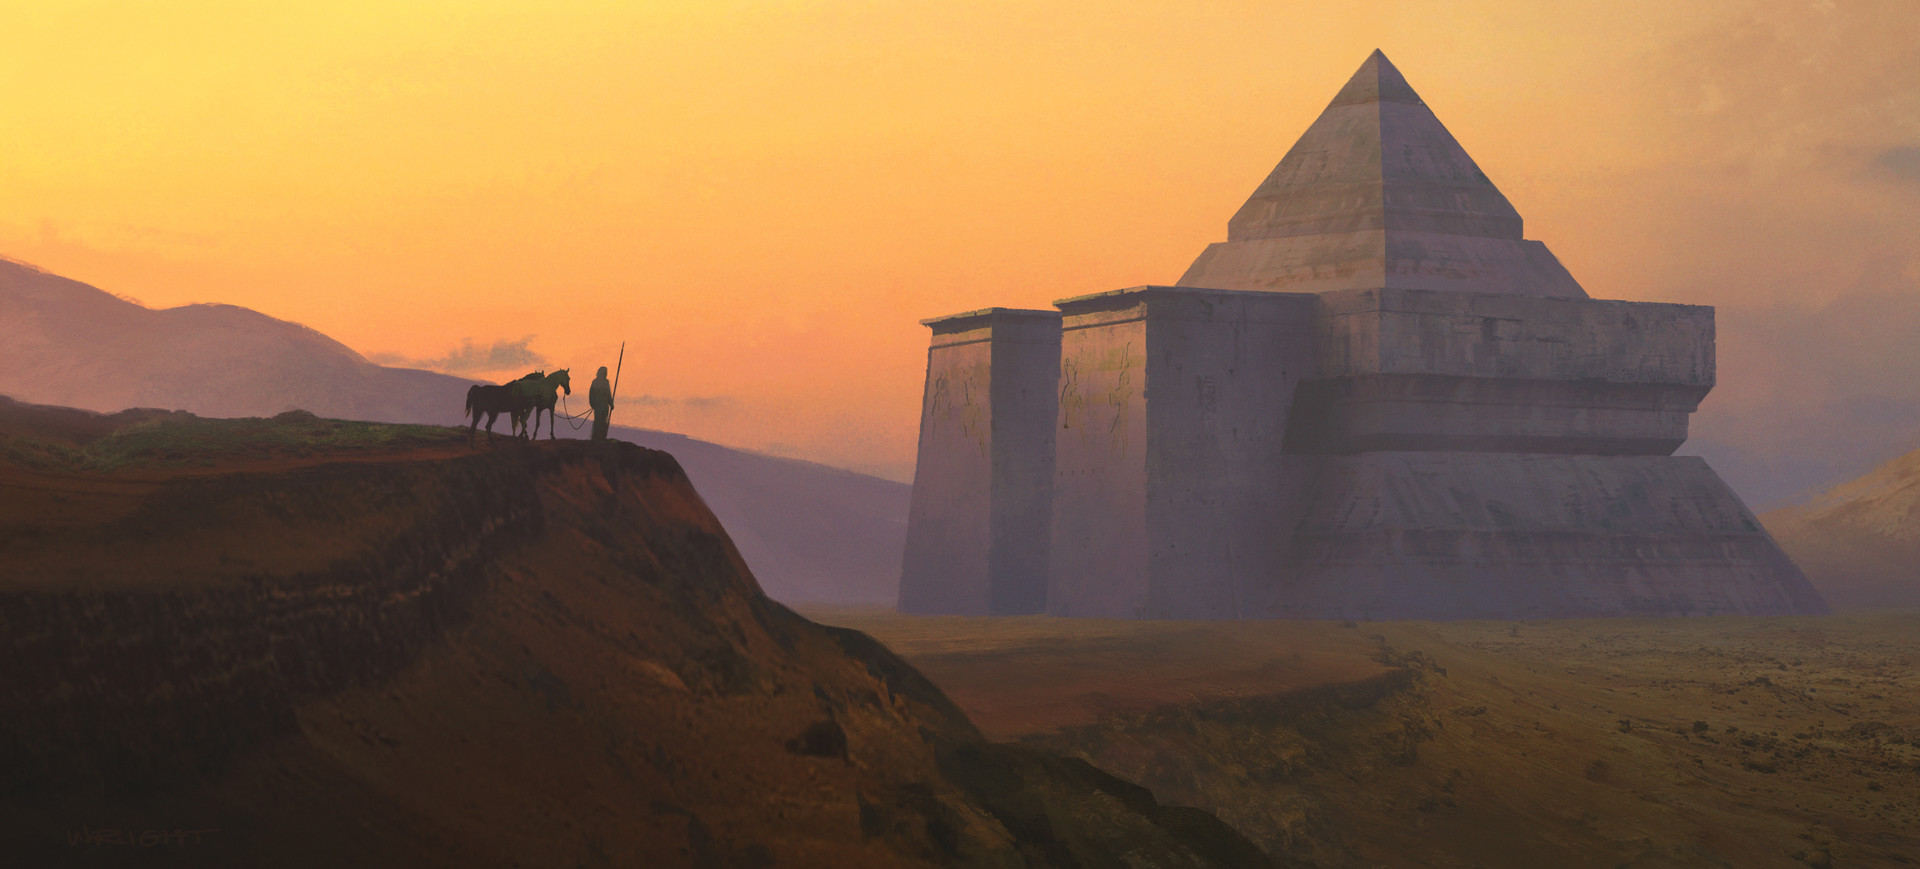 Digital painting de pyramide